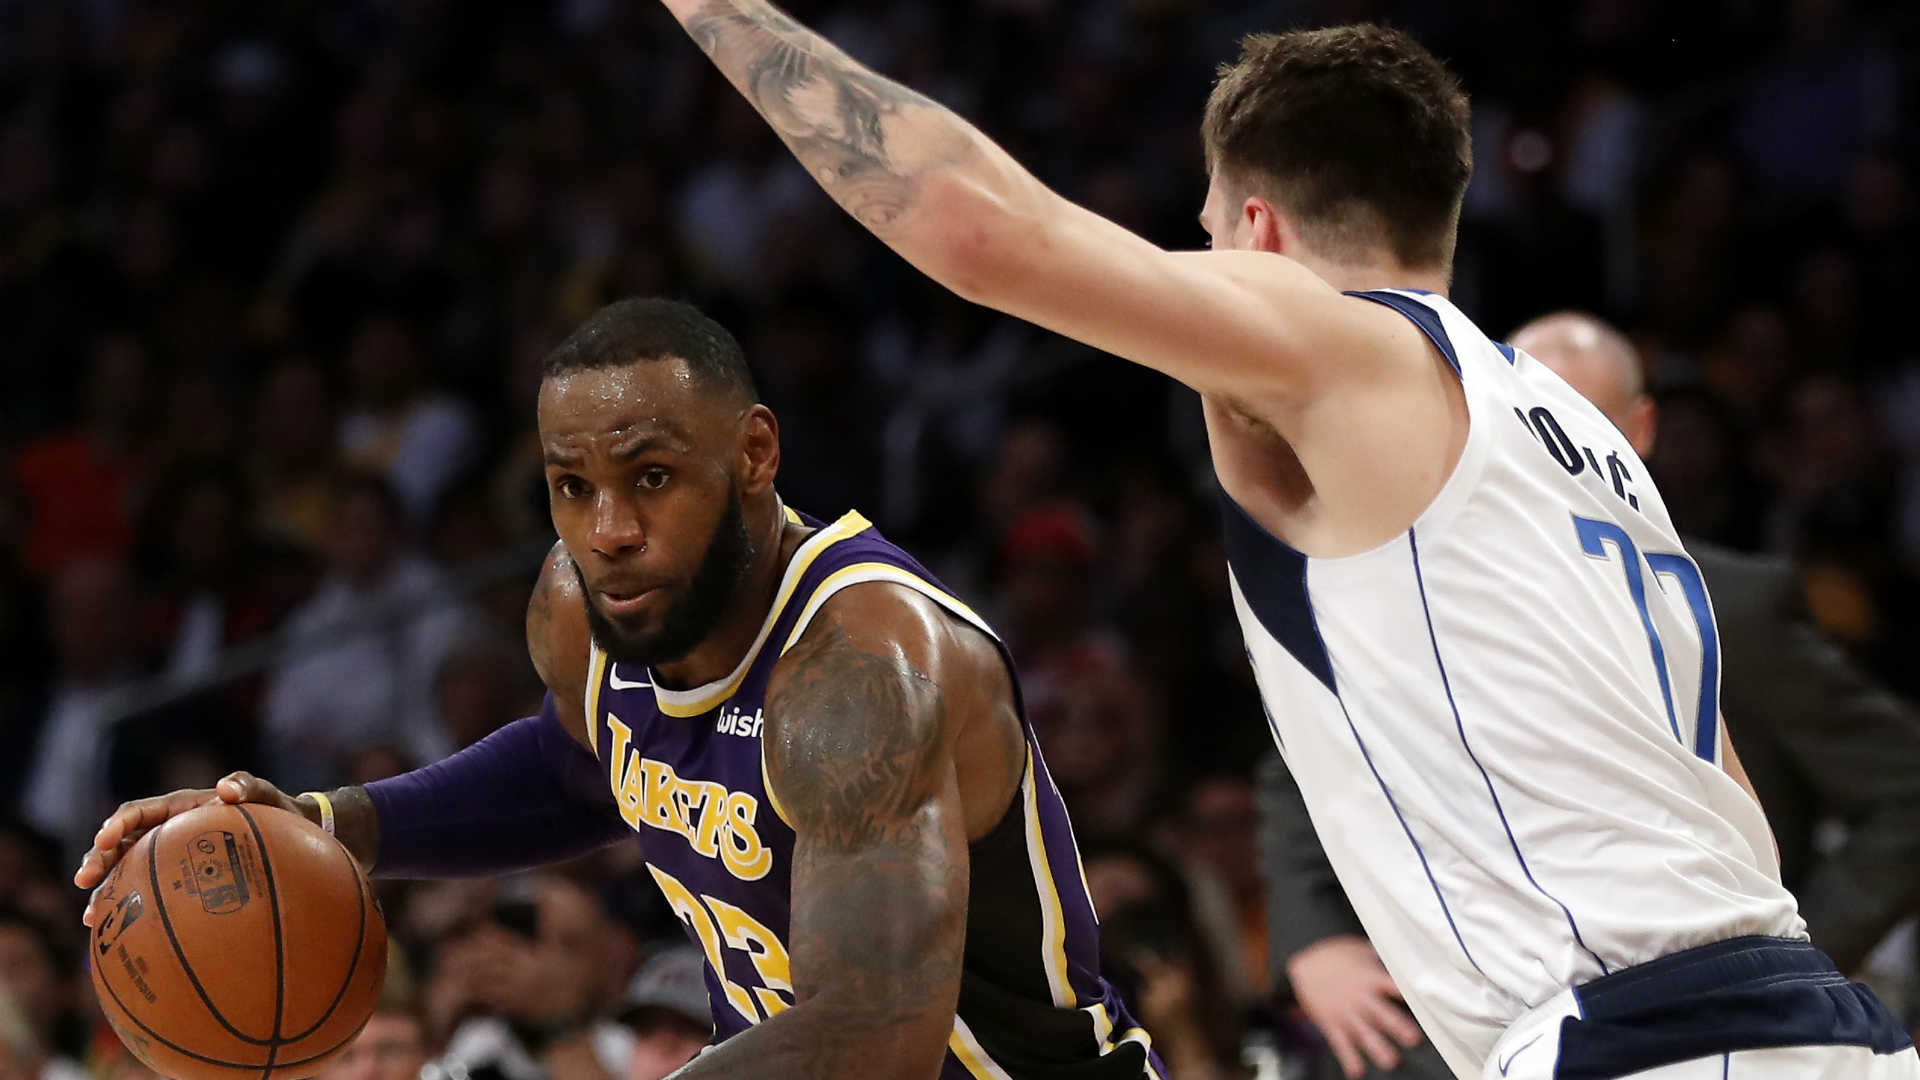 Lakers' LeBron James downplays heated Magic Johnson-Luke Walton meeting